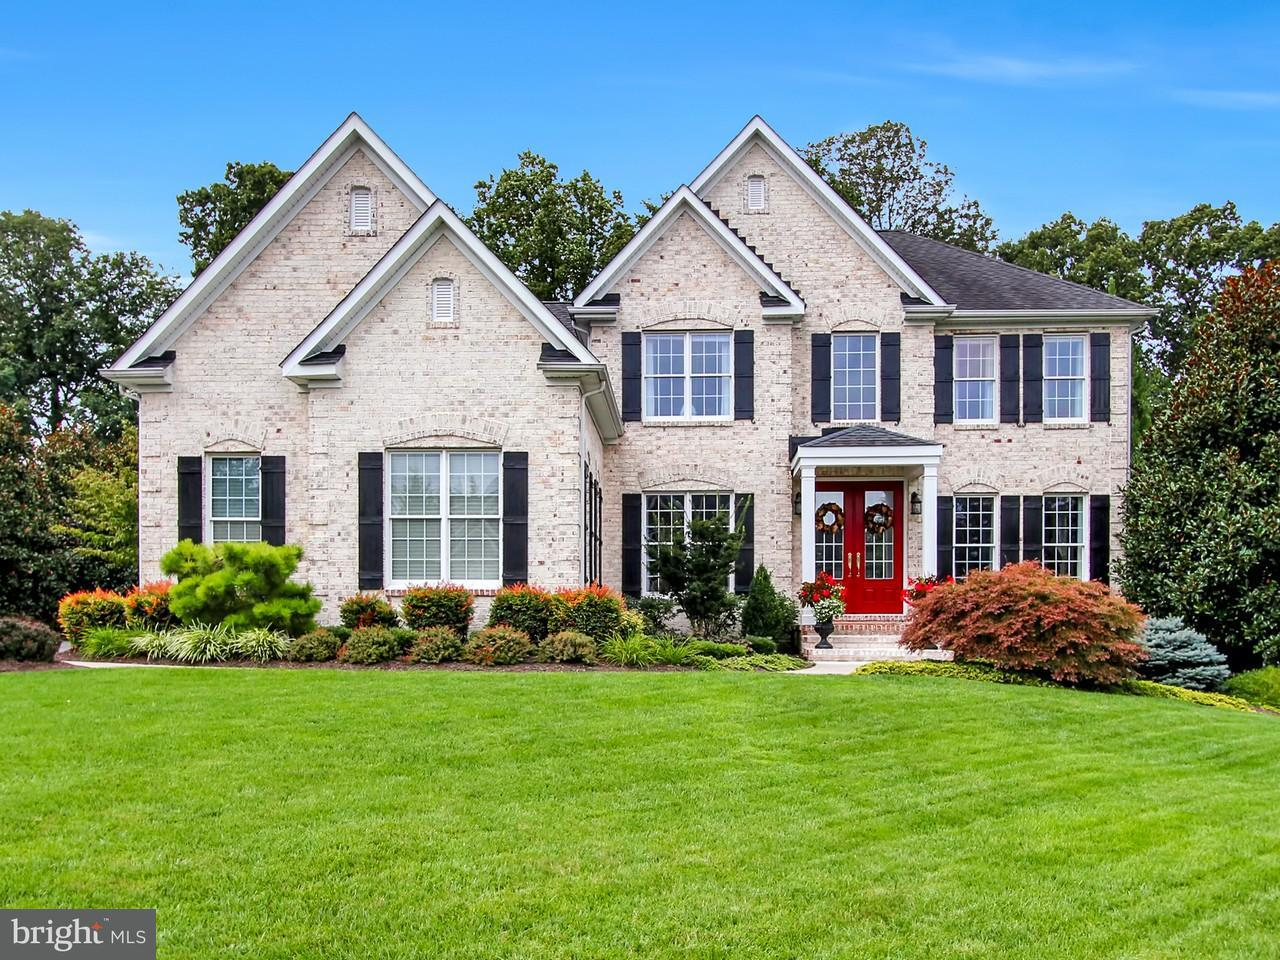 Single Family Home for Sale at 1512 STONE POST Court 1512 STONE POST Court Bel Air, Maryland 21015 United States